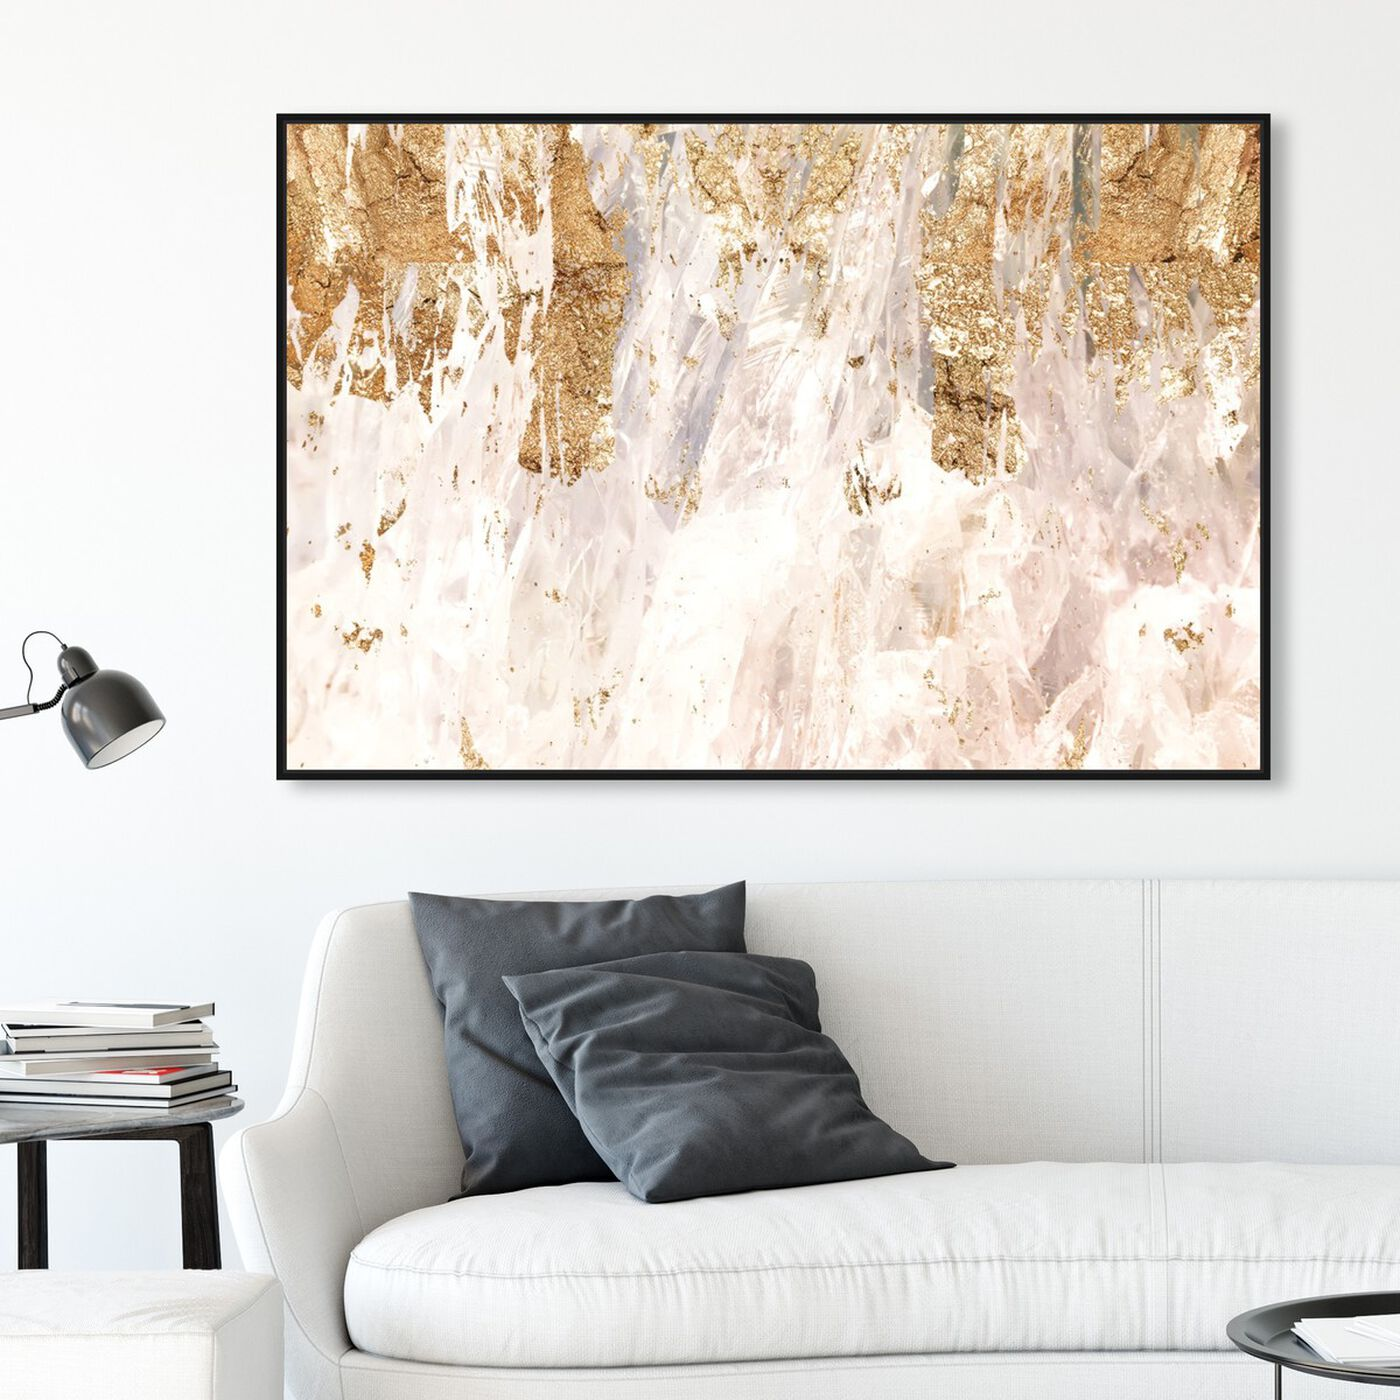 Hanging view of Star Light featuring abstract and textures art.